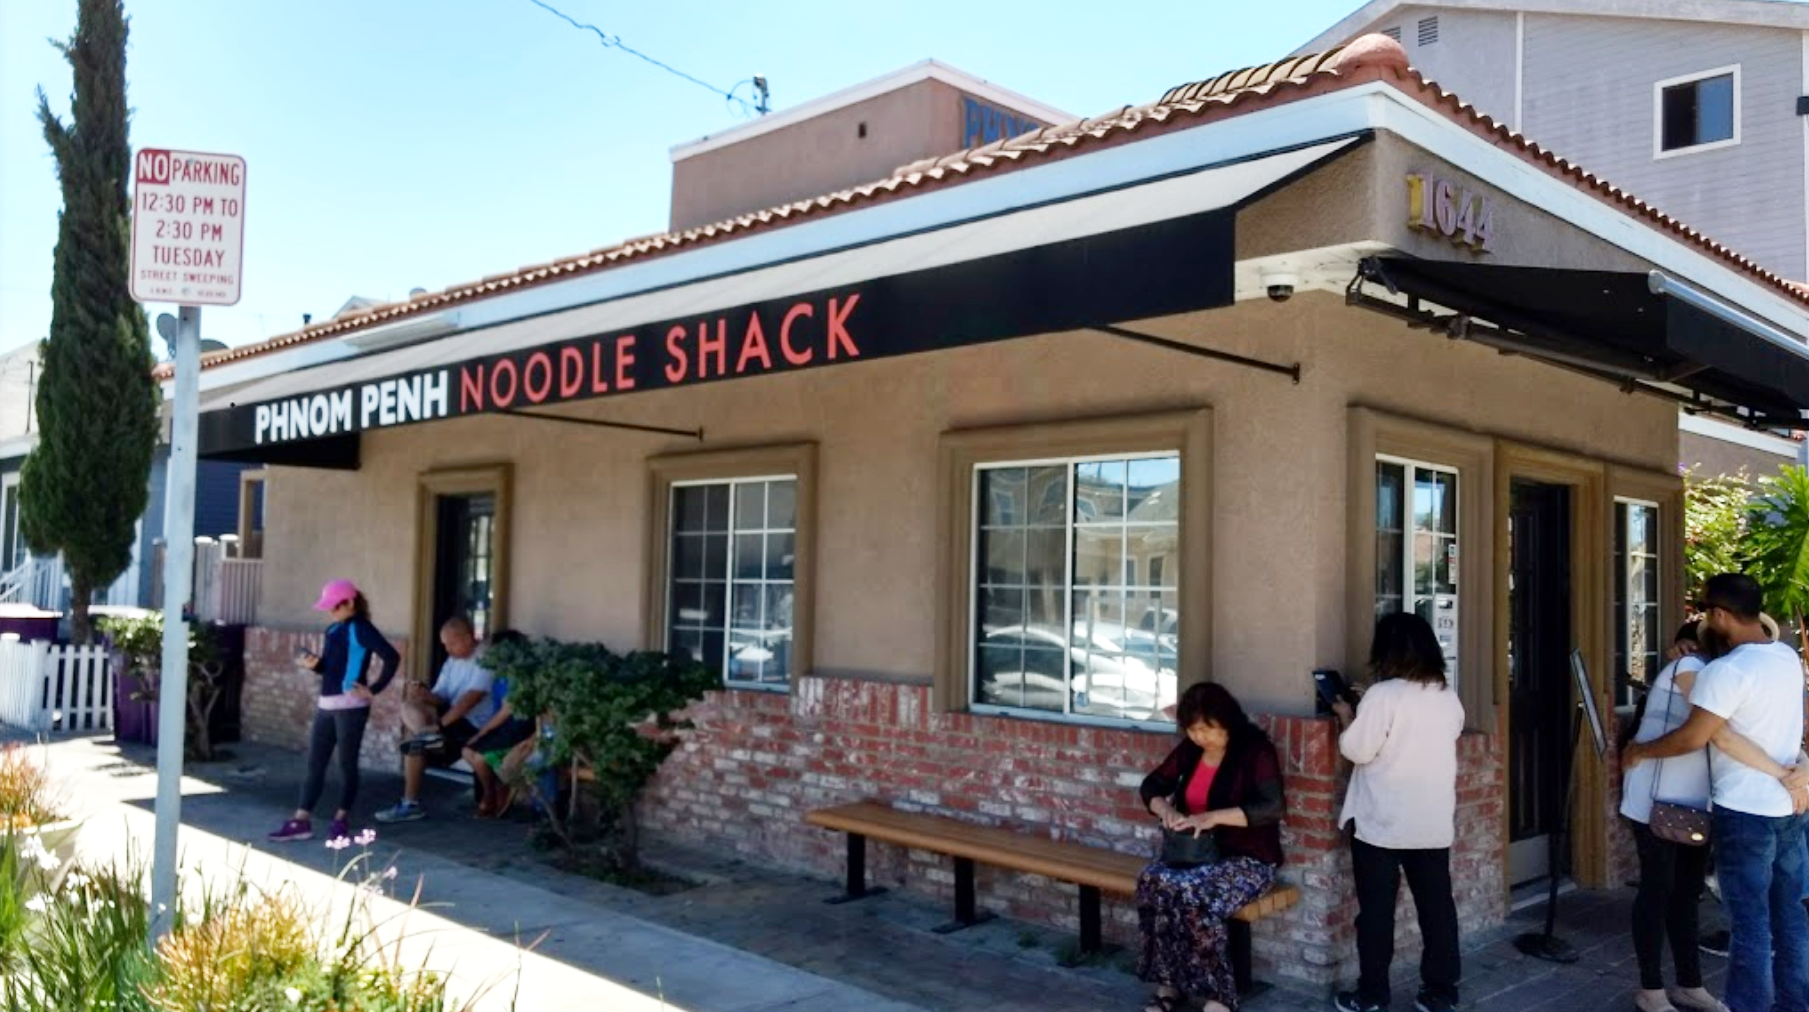 Opened in 1985, Phnom Penh Noodle Shack gives eaters a comfortable environment and simple Cambodian dishes for anyone to enjoy.